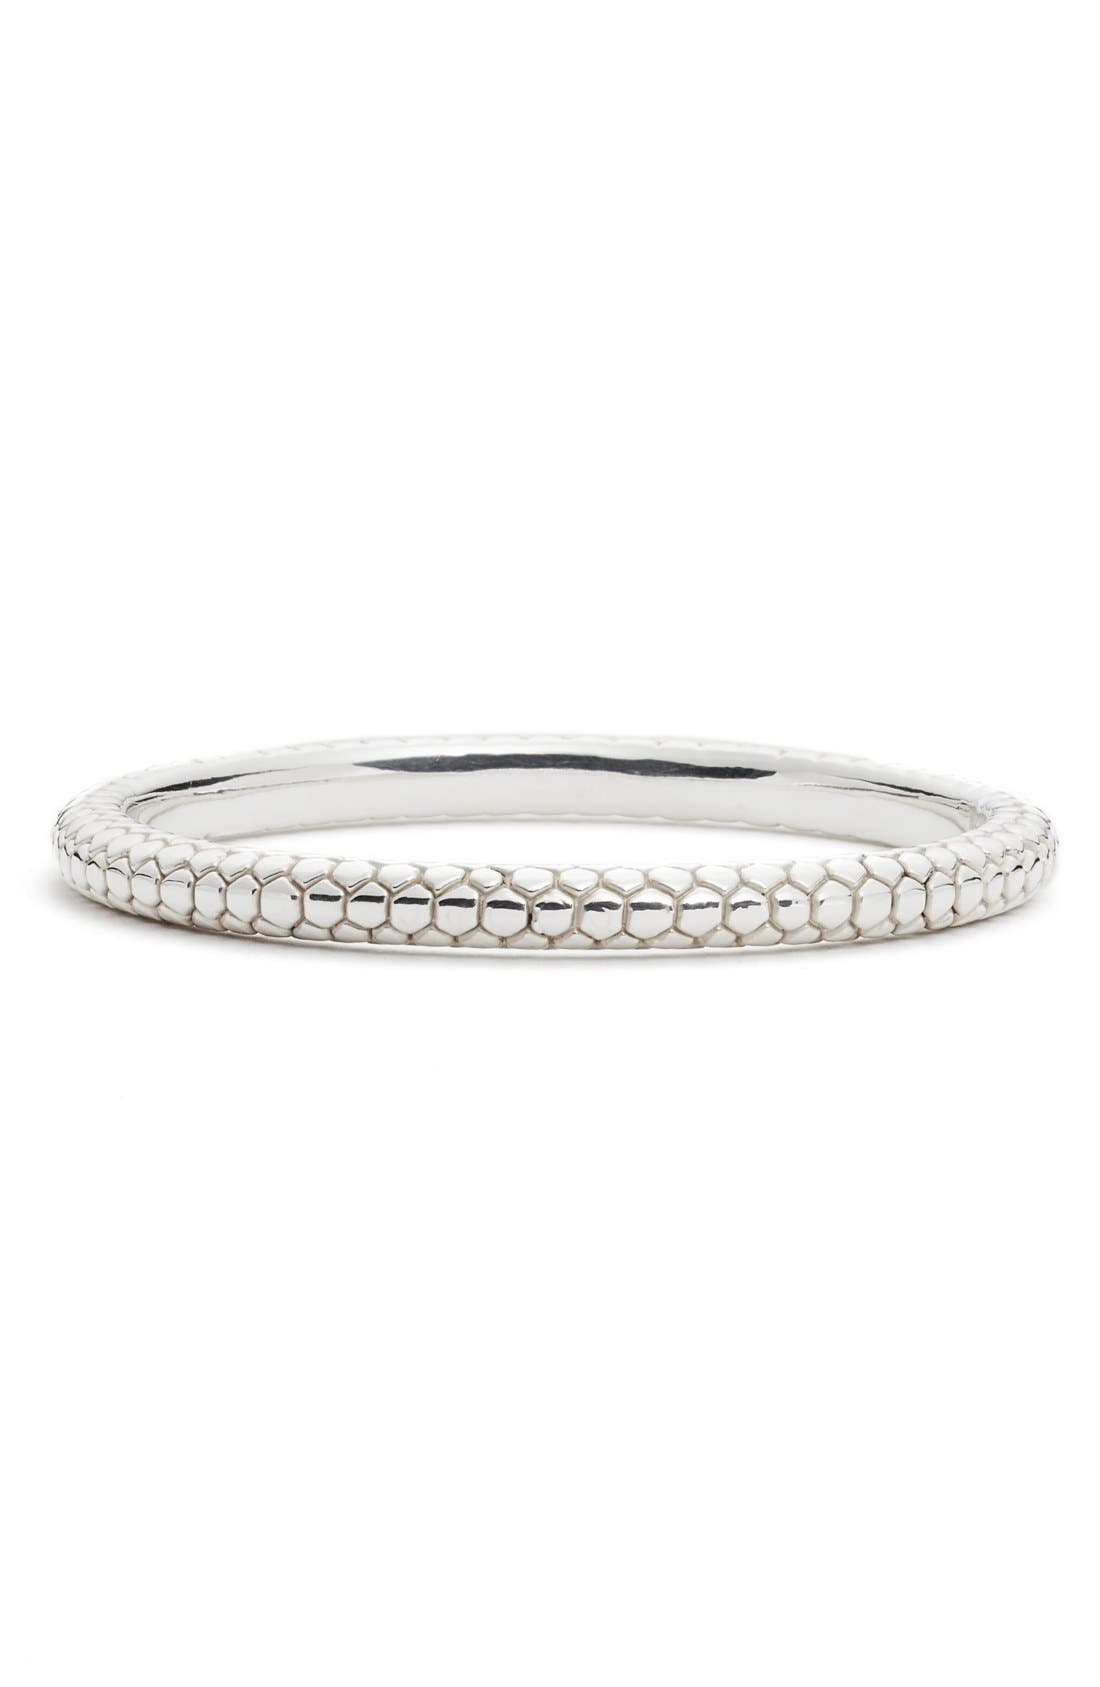 Main Image - Simon Sebbag Pebble Textured Bangle